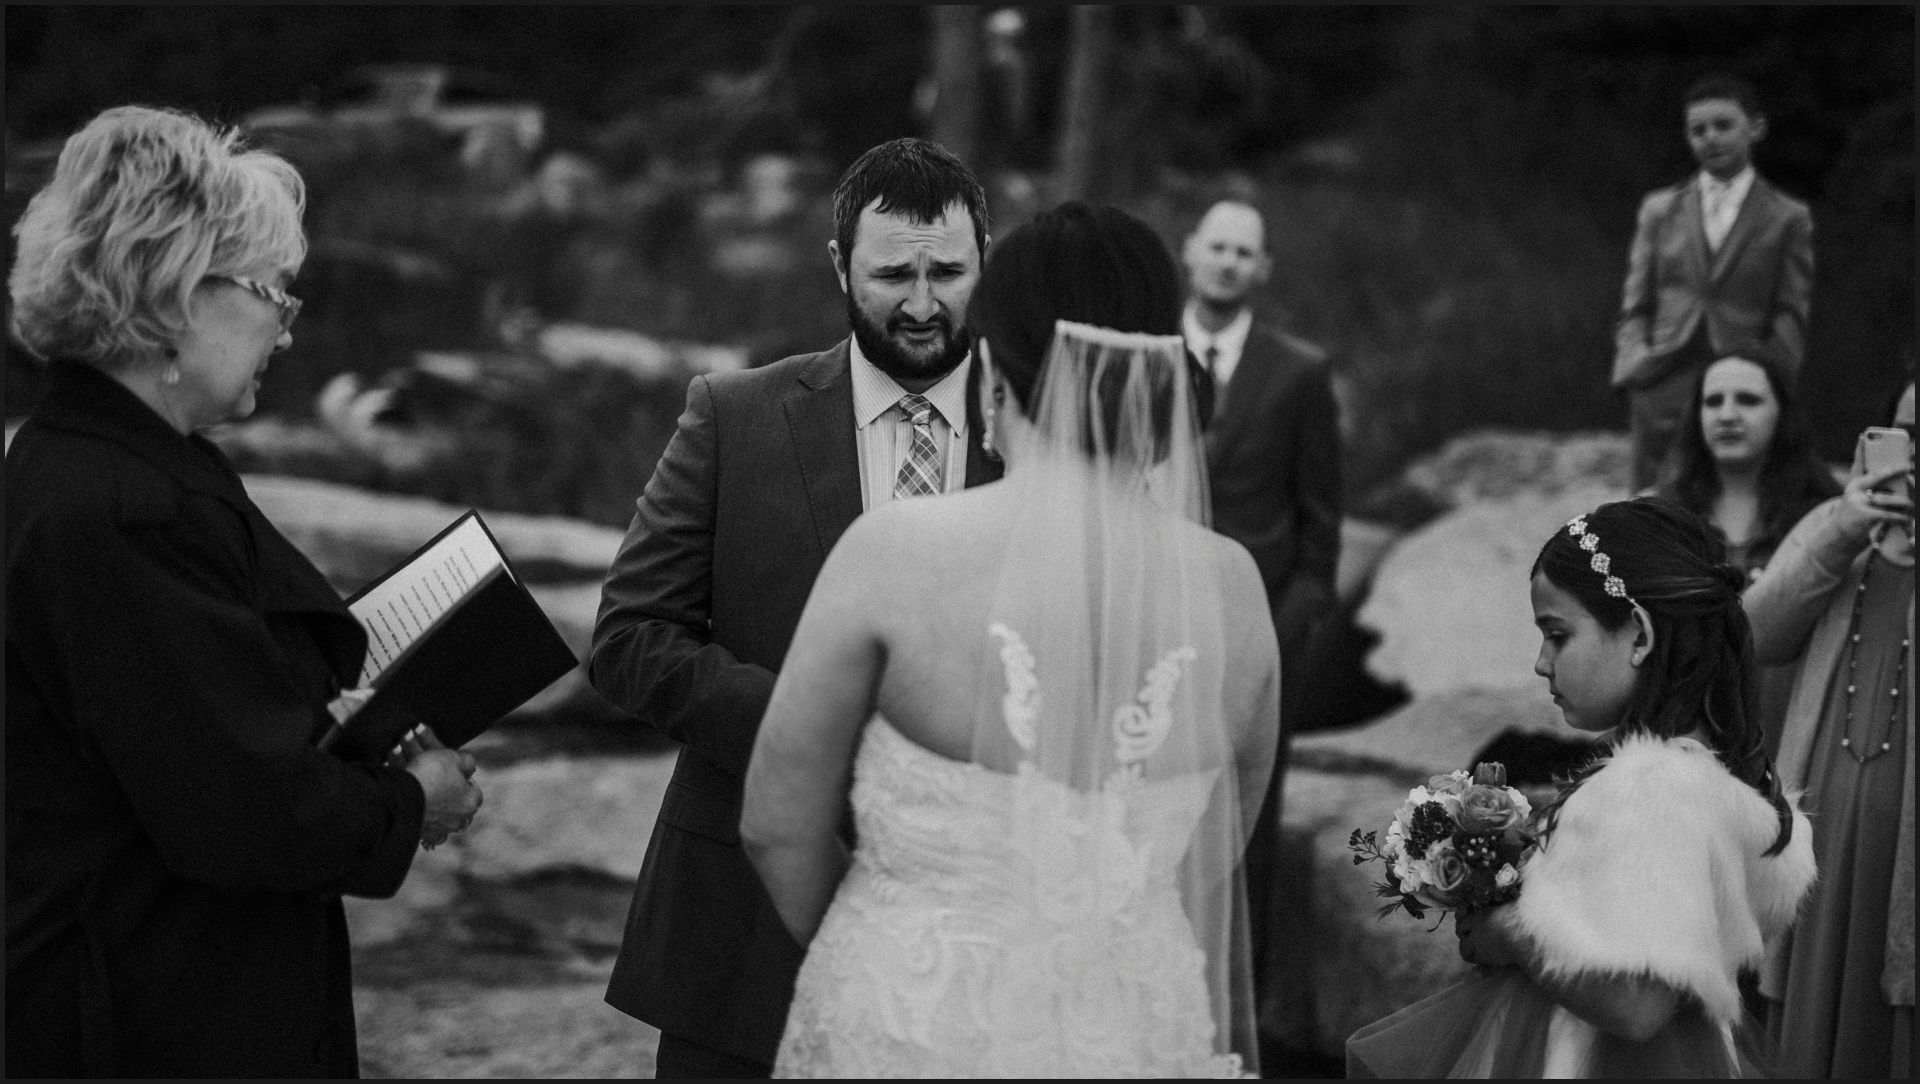 black and white, ceremony, bride and groom, wedding vows